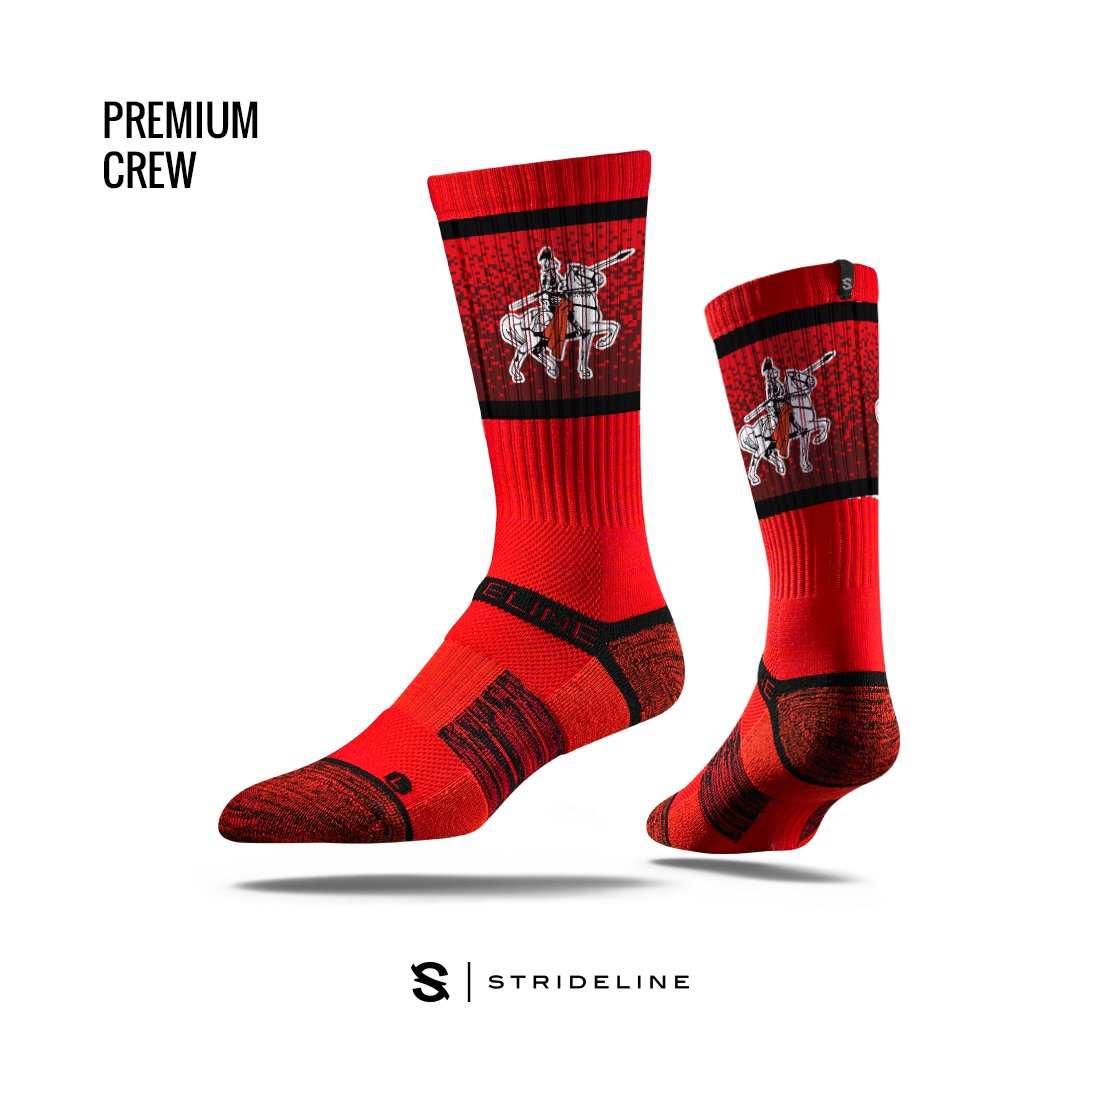 Mary Walker High School Apparel | Socks | Premium